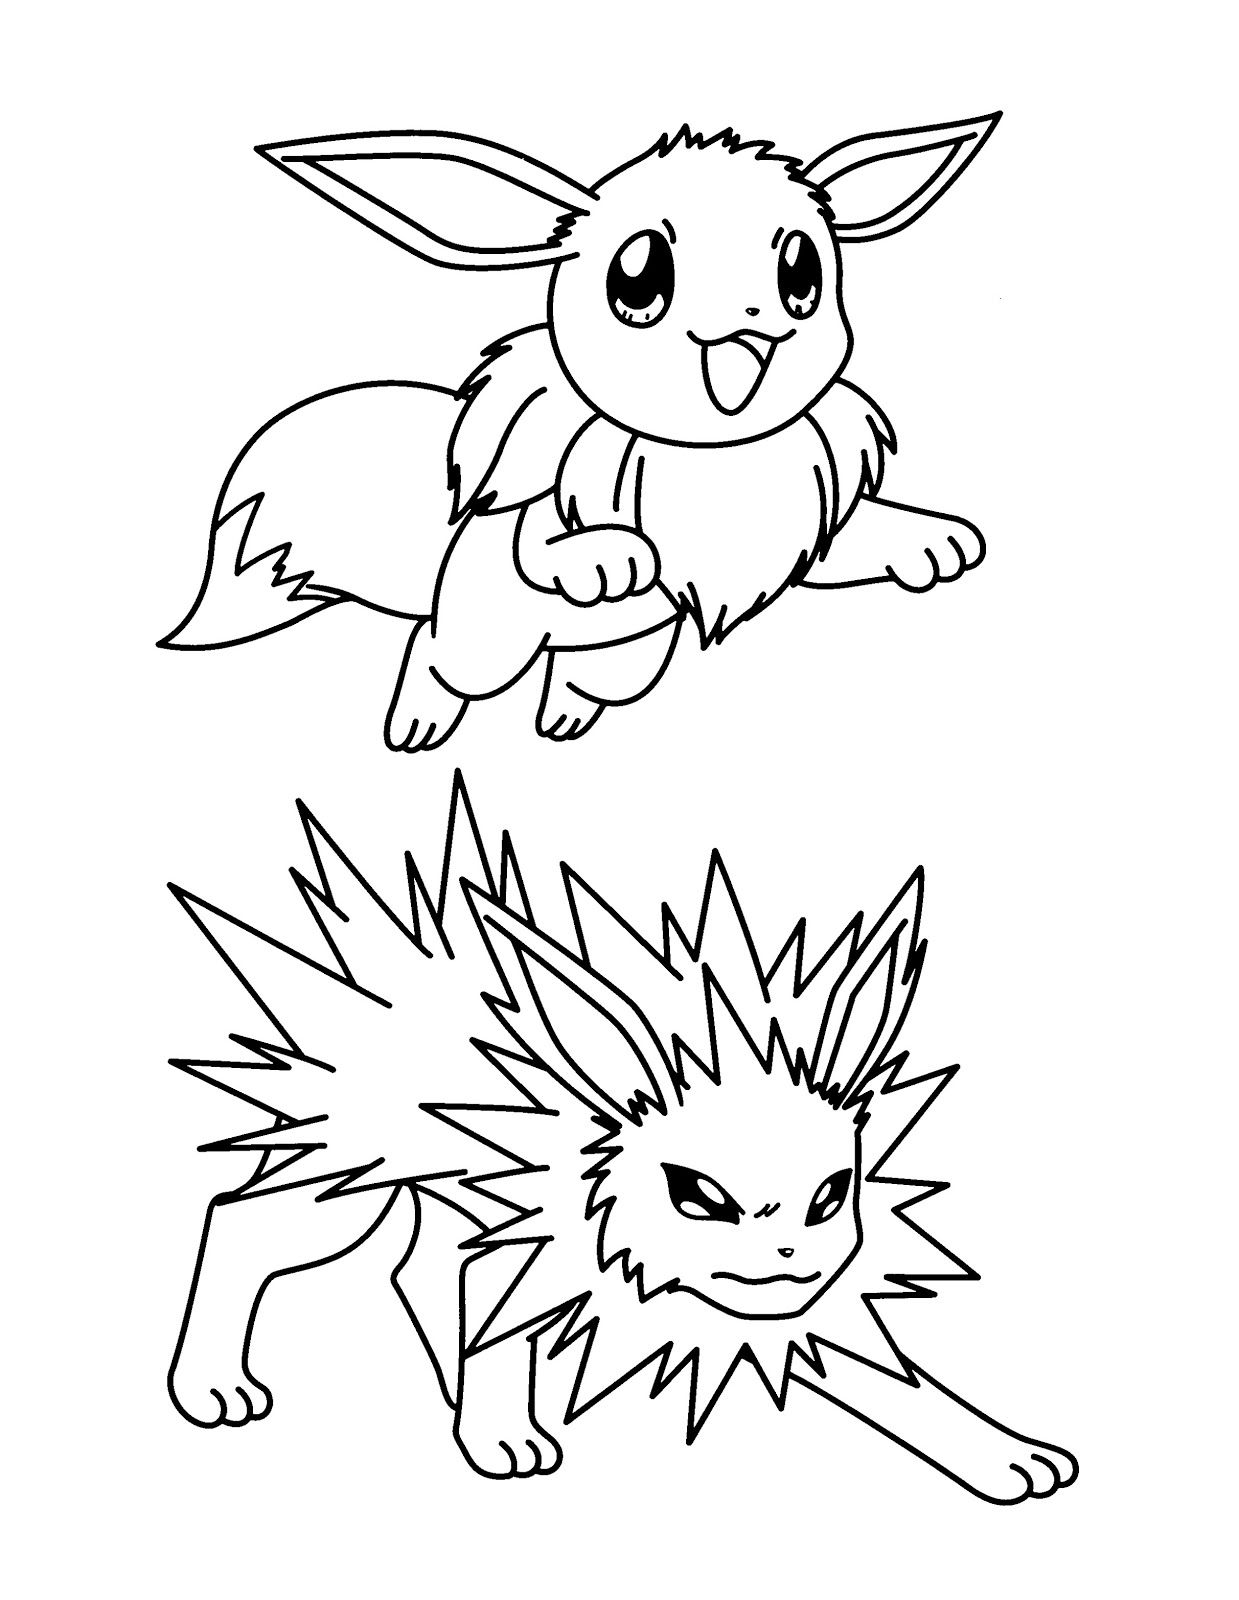 Eevee And Jolteon Coloring Pages Pokemon Coloring Pages Eevee